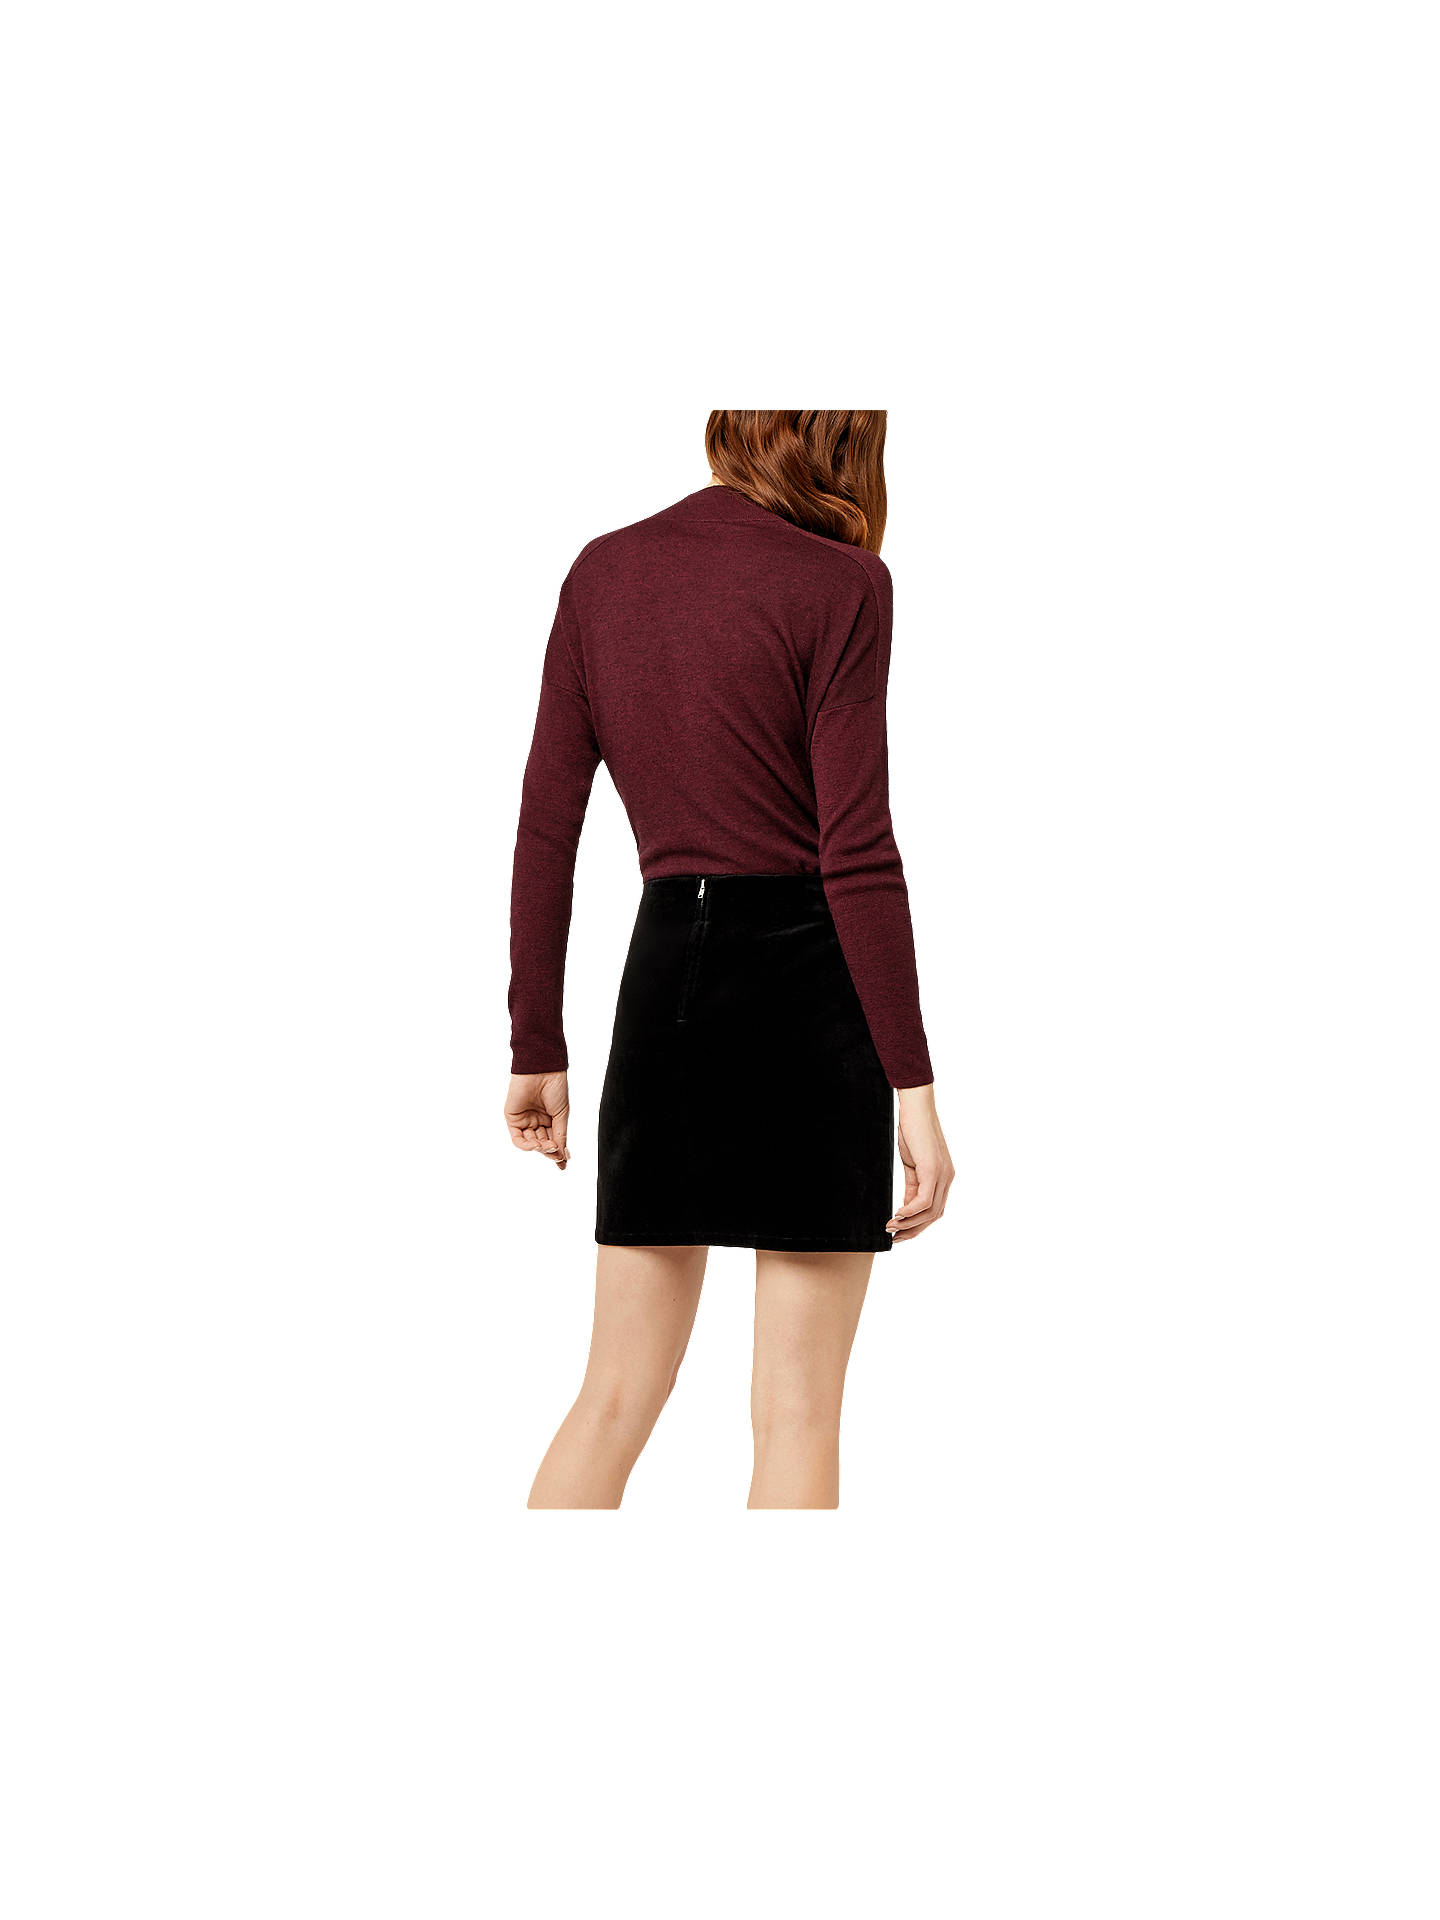 9f89cb788 ... Buy Warehouse Velvet Pelmet Skirt, Black, 6 Online at johnlewis.com ...